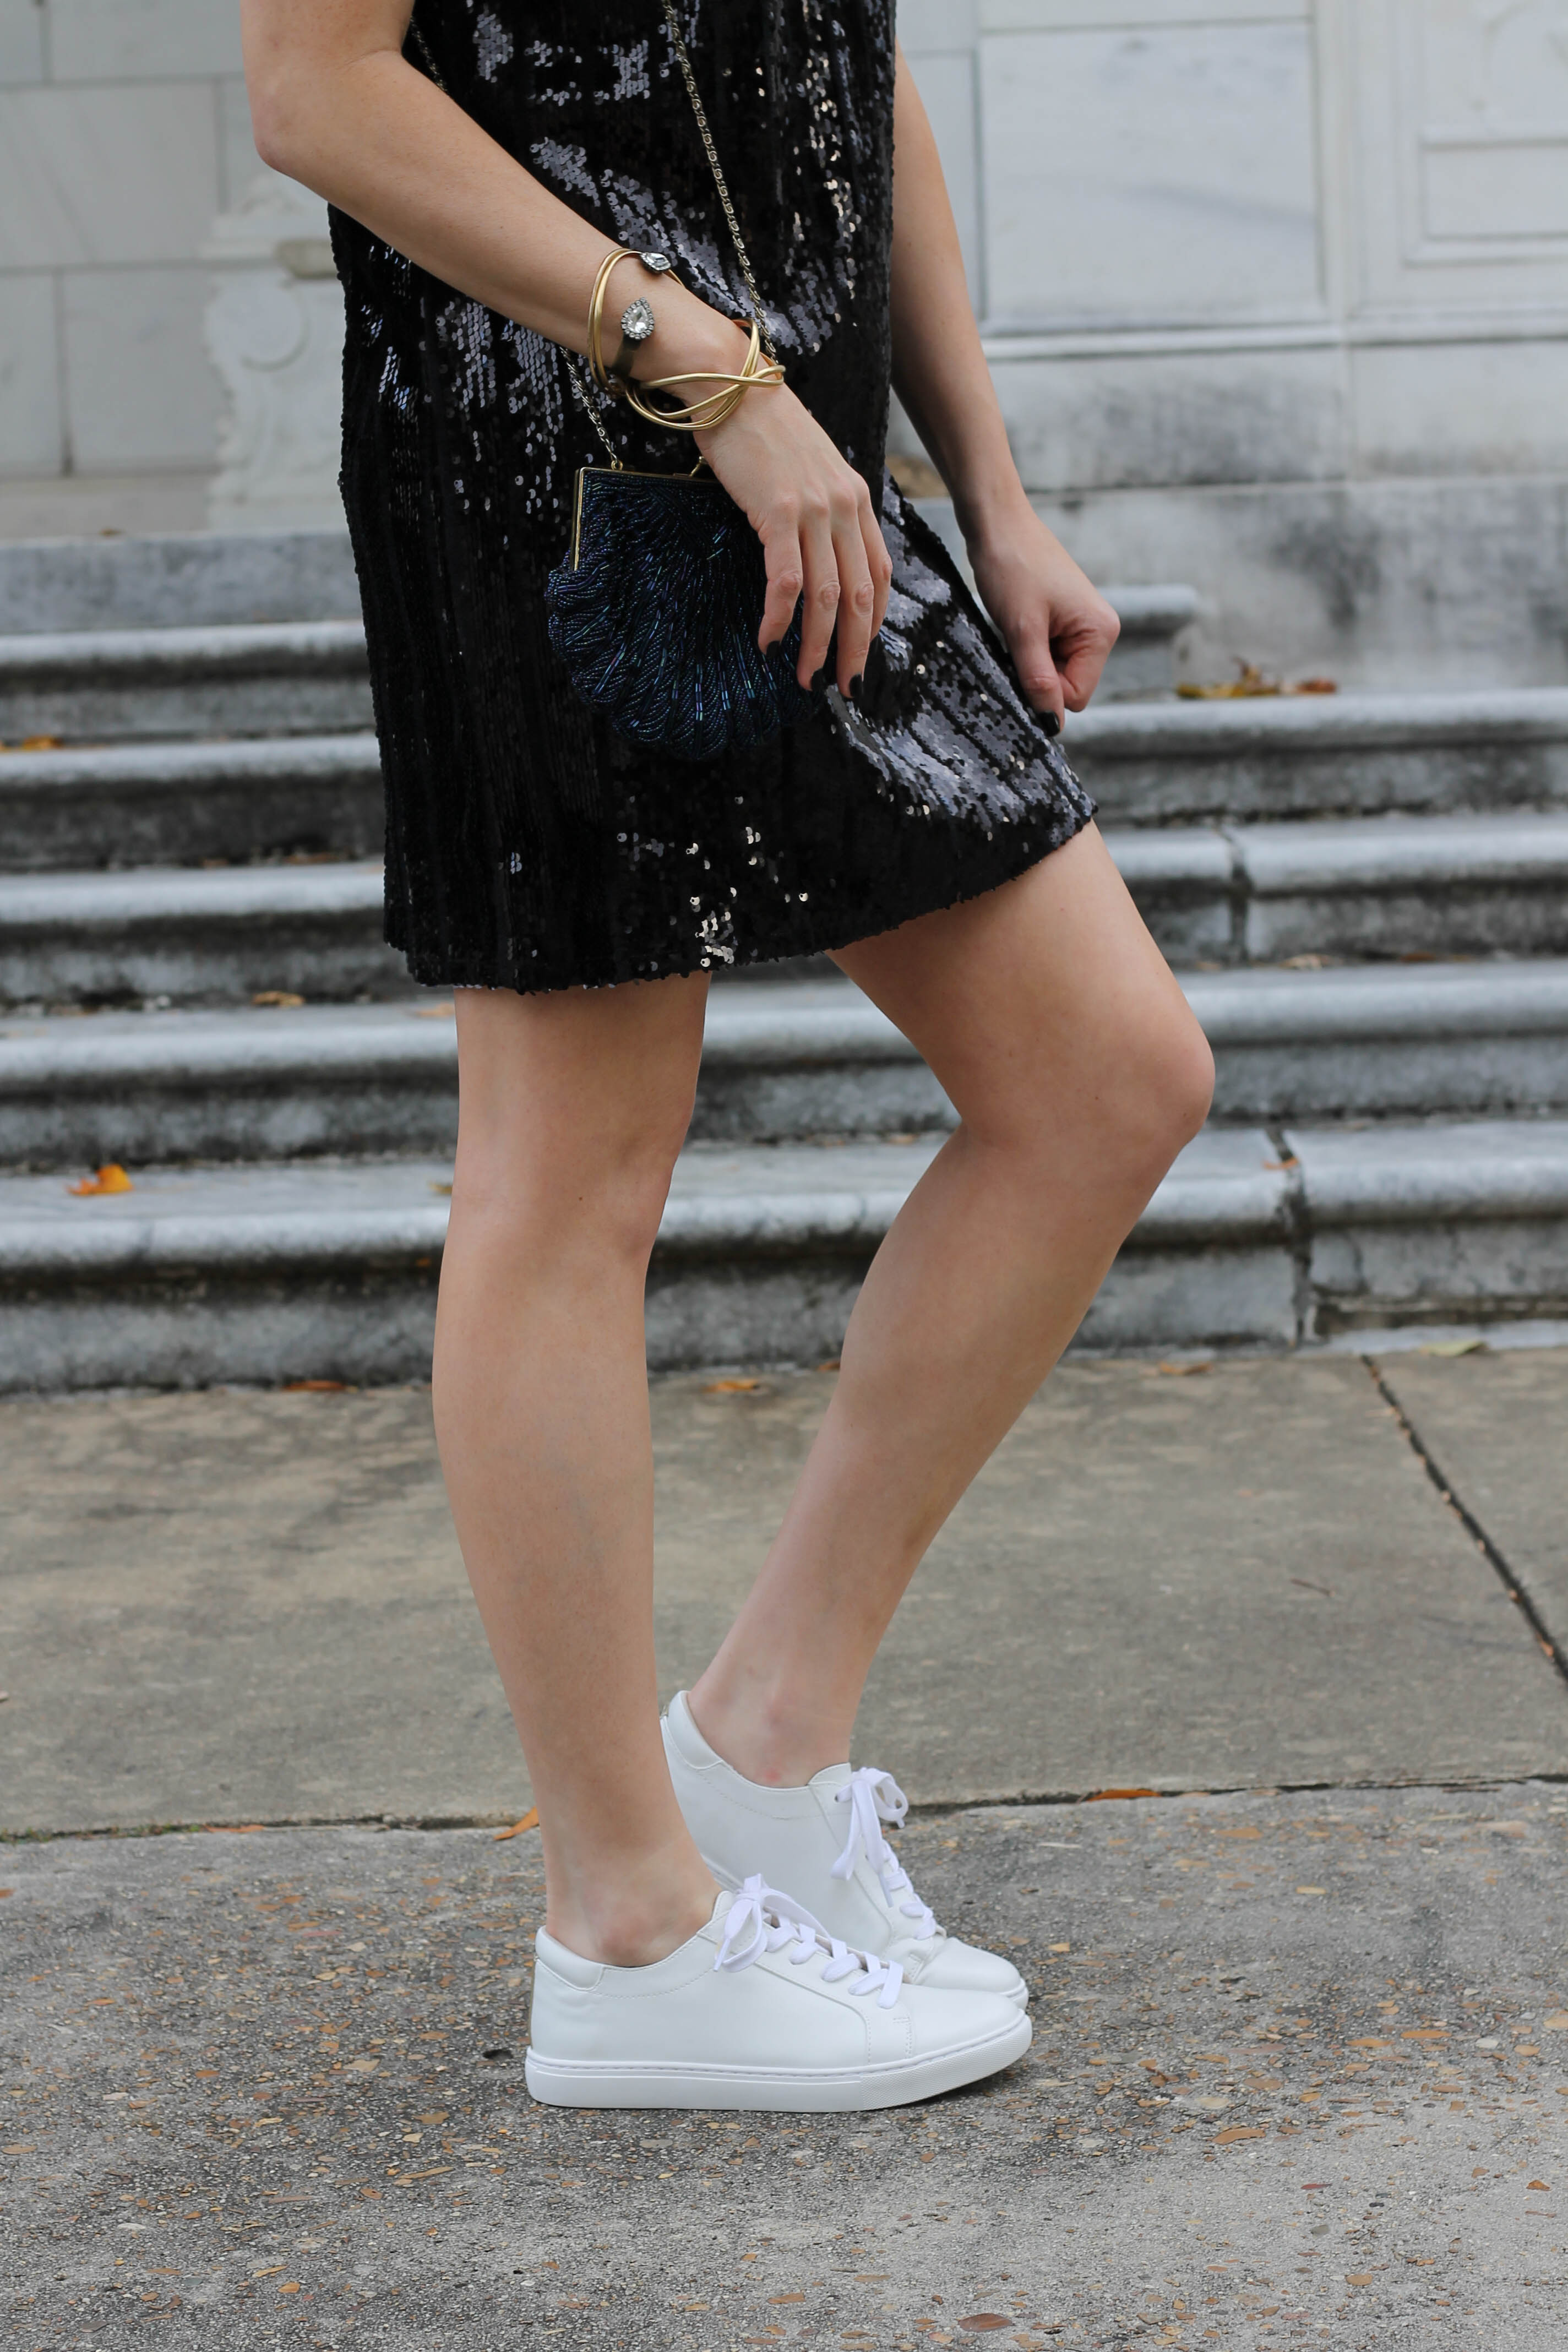 dressed-down-sequin-4